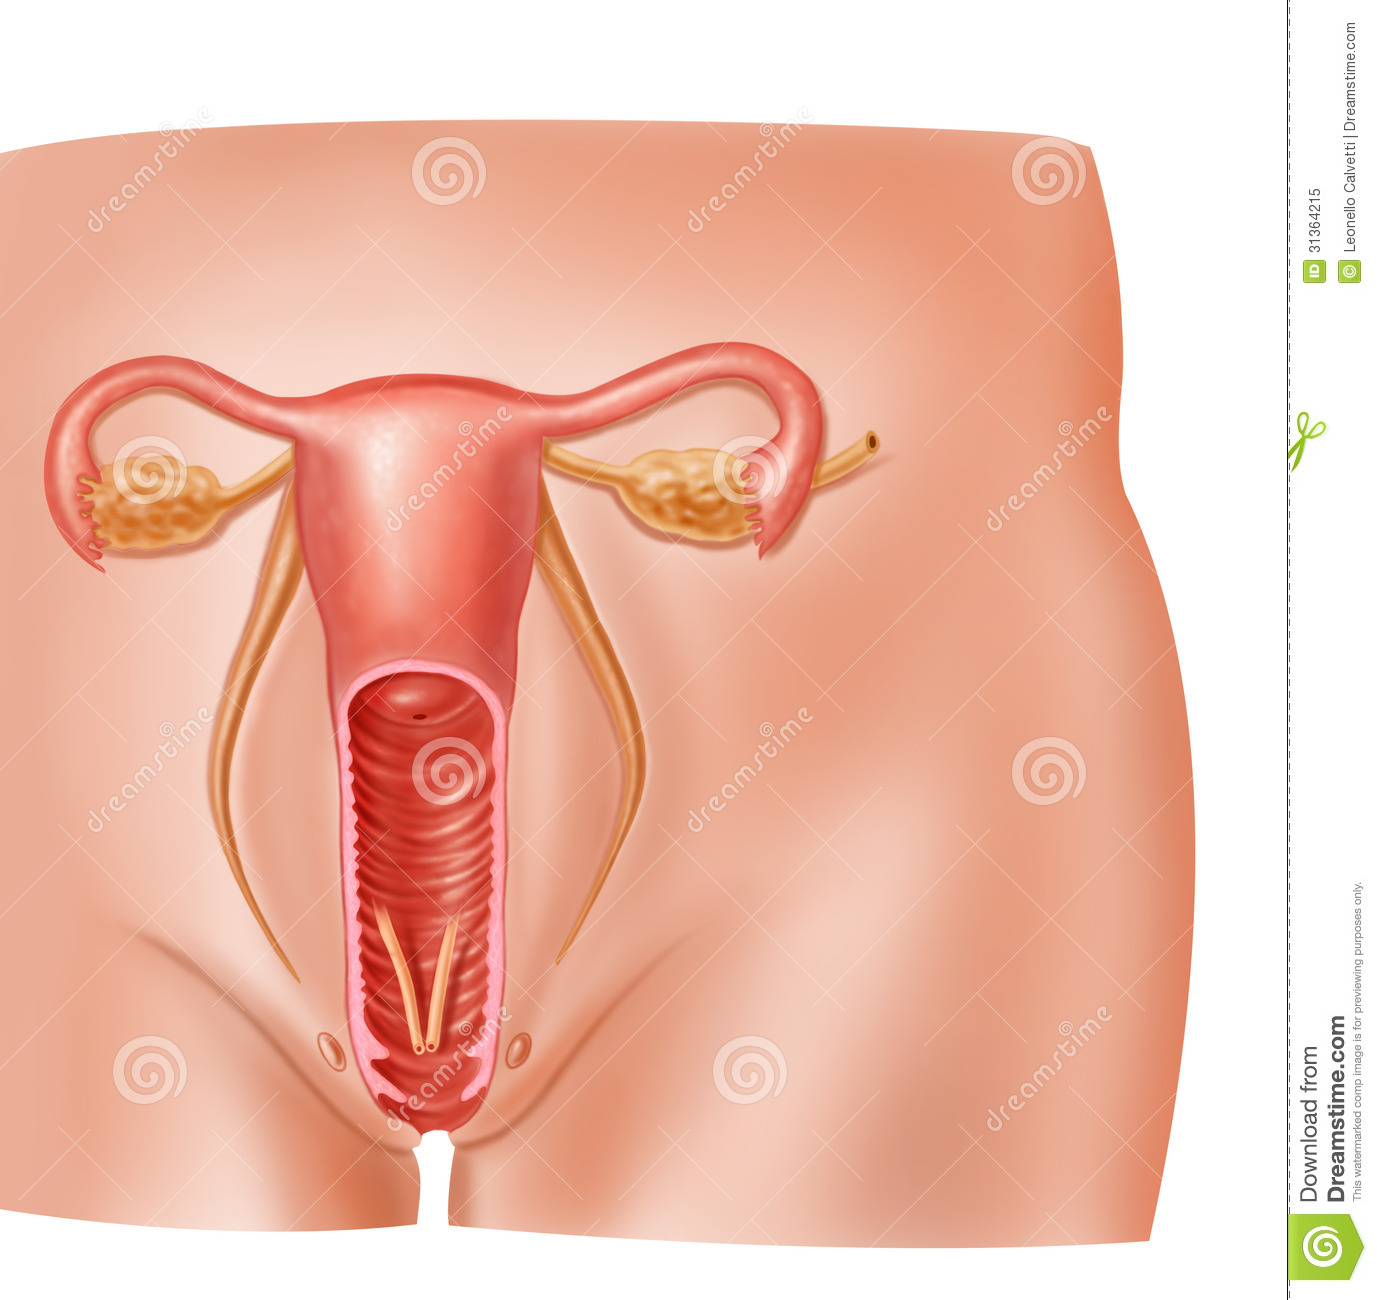 Anatomy Female Reproductive System Cross Section. Stock Illustration ...